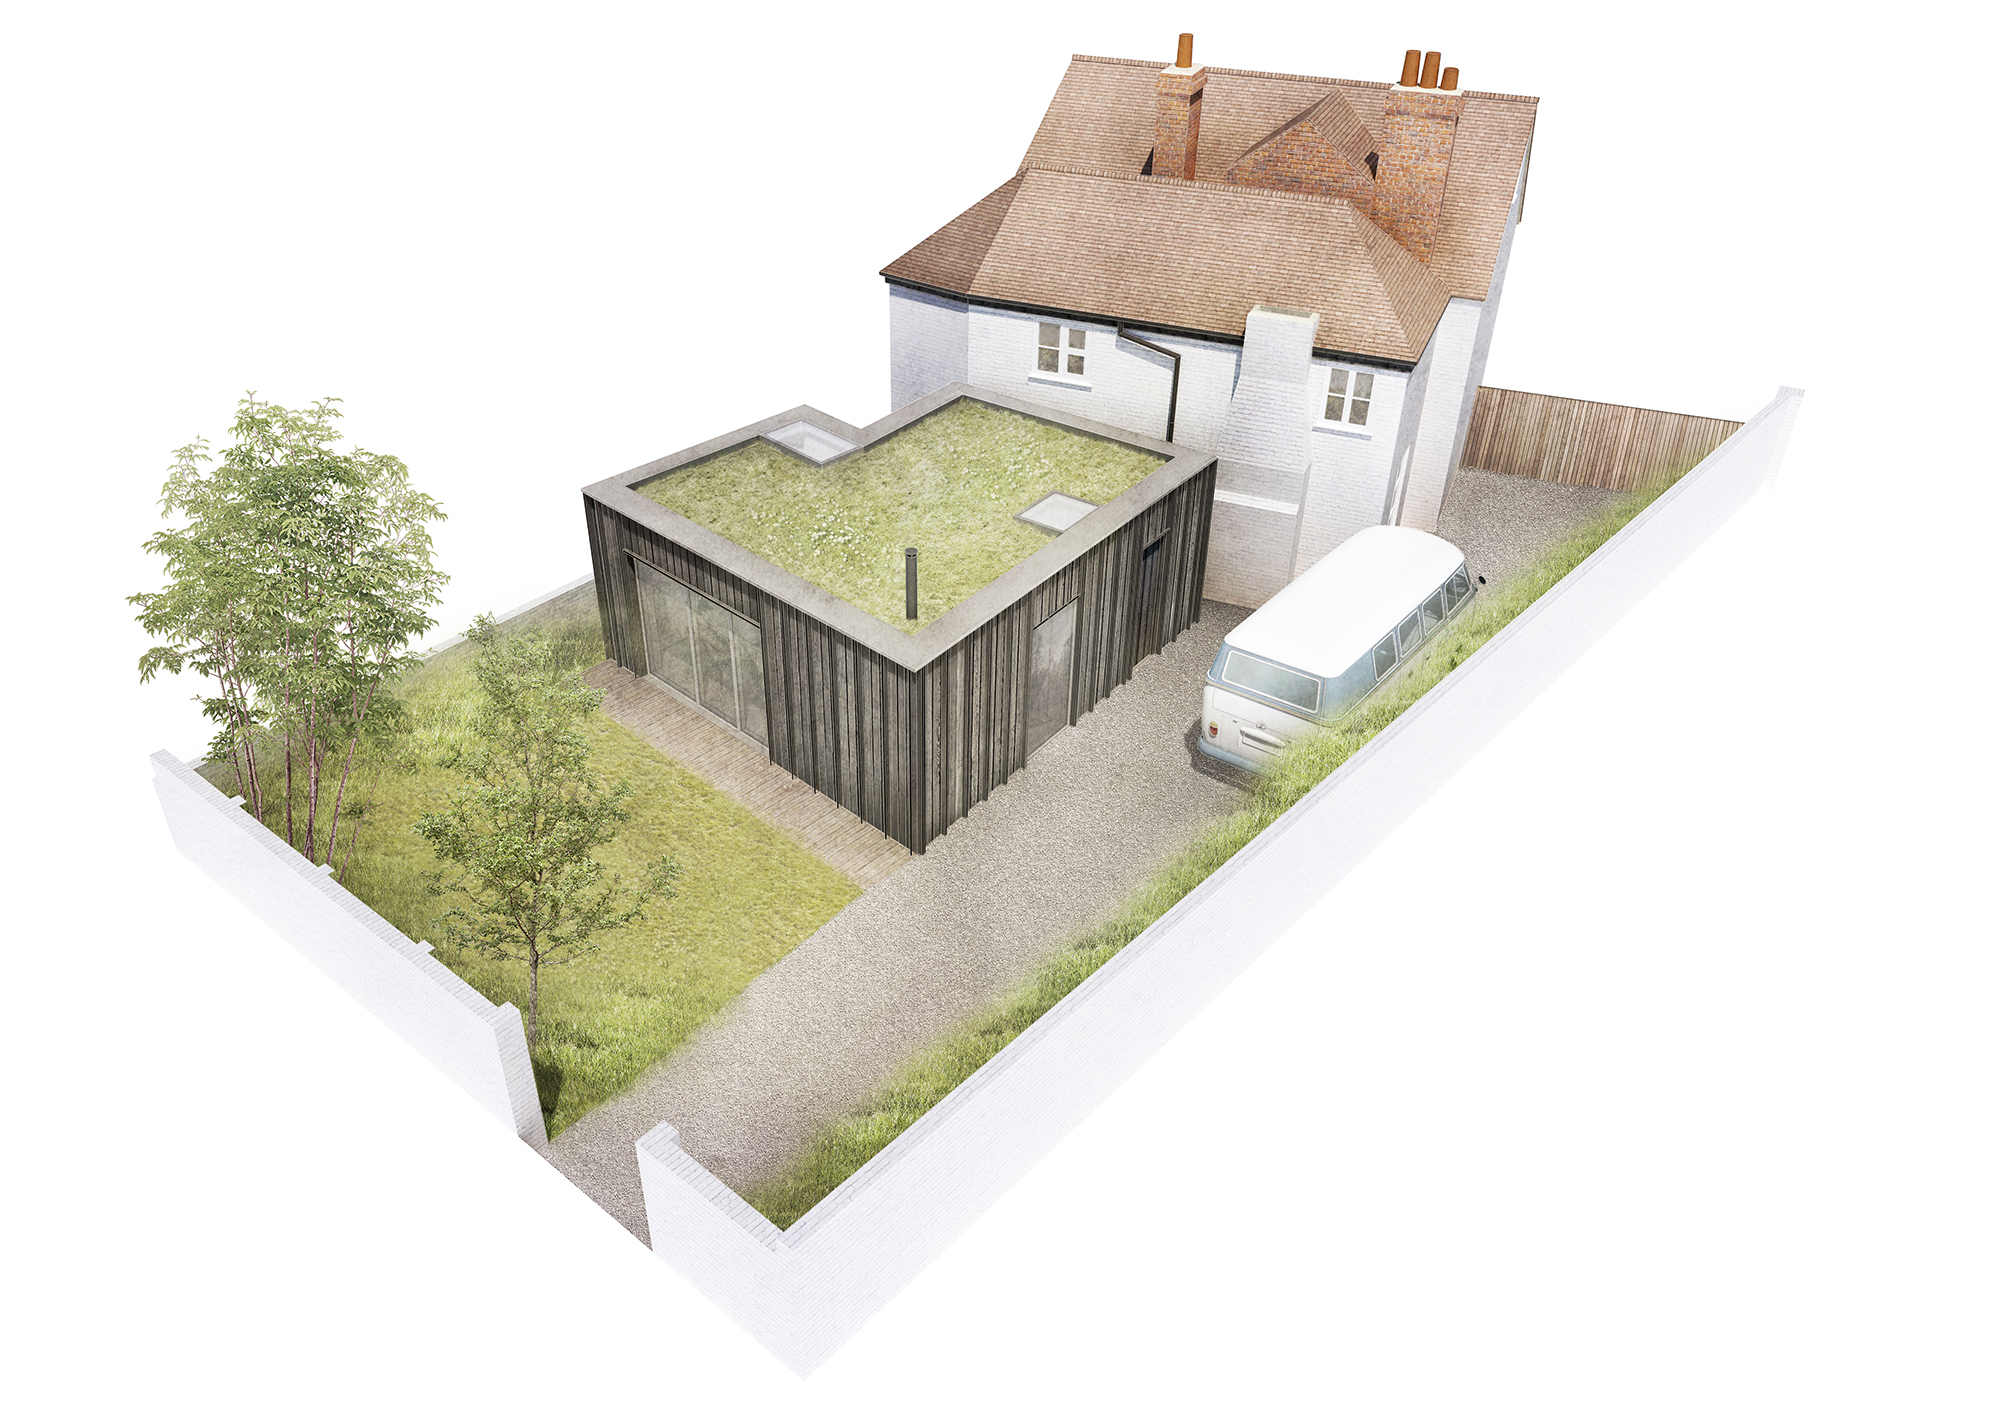 Concept of contemporary architecture extension exterior, Twyford, Hampshire